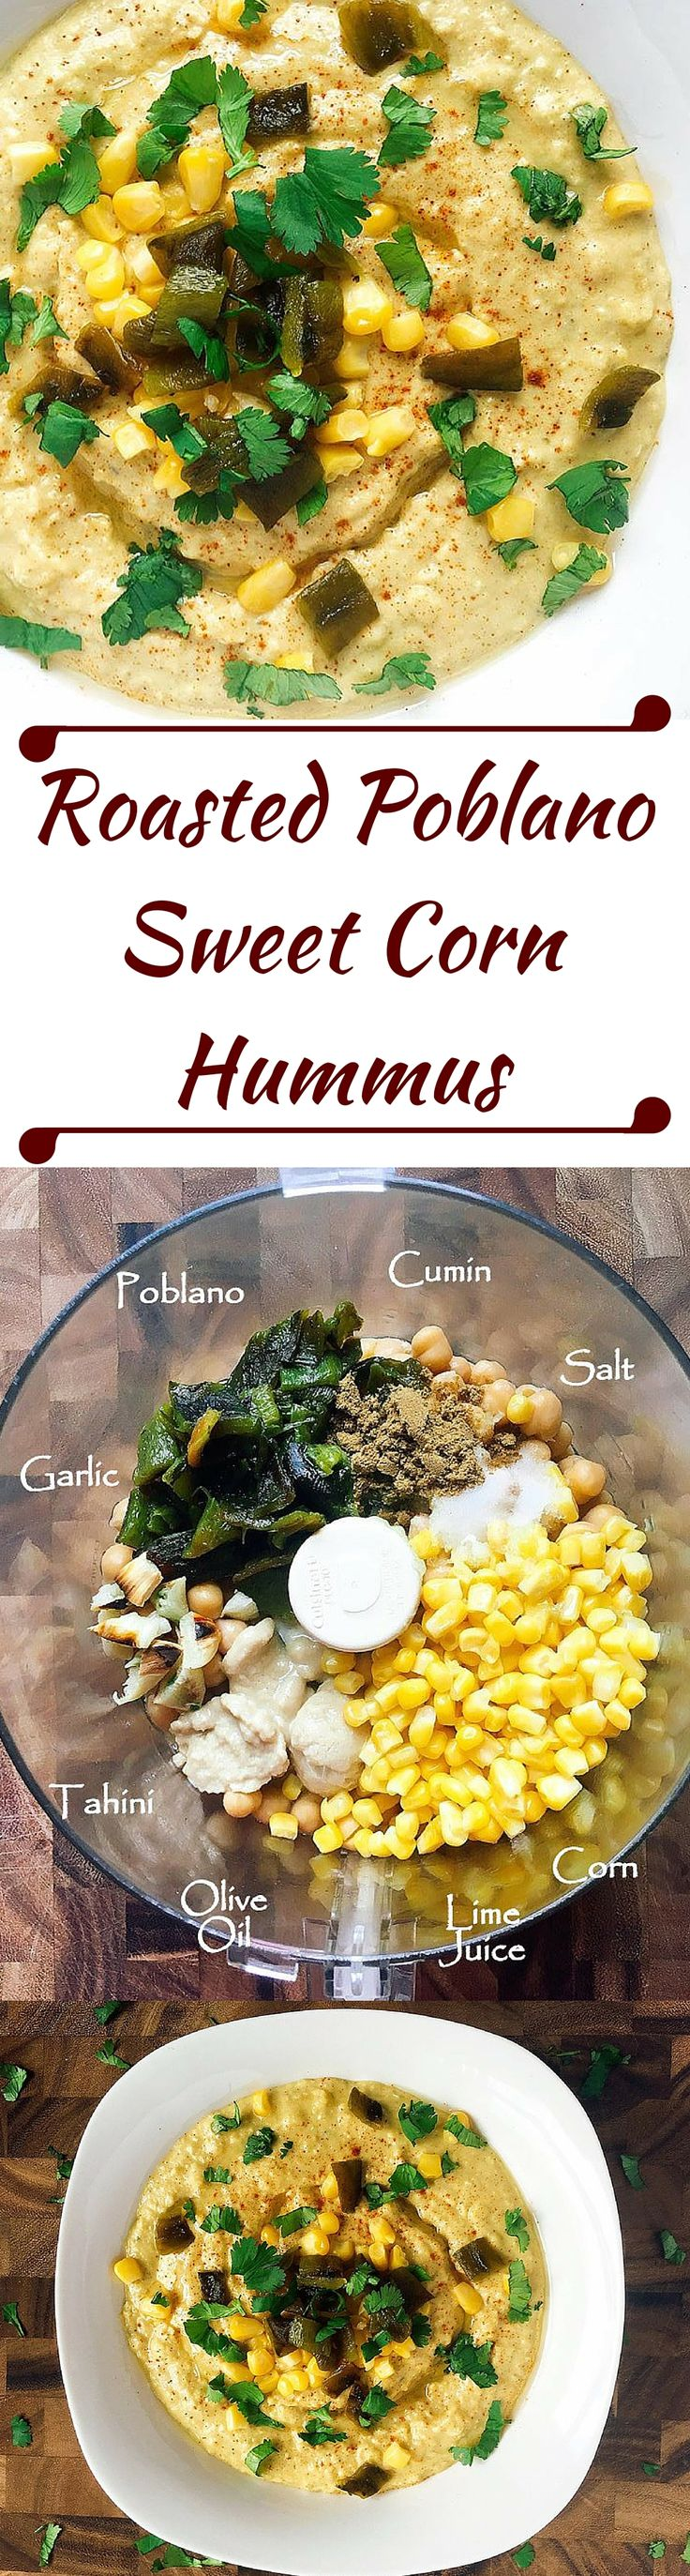 Don't buy hummus when it is so easy to make your own!  Ready in just a few minutes, this vegan hummus combines the smoky flavor of roasted Poblano peppers with sweet corn and lime juice to bring a Mexican twist to traditional hummus.   Three Olives Branch